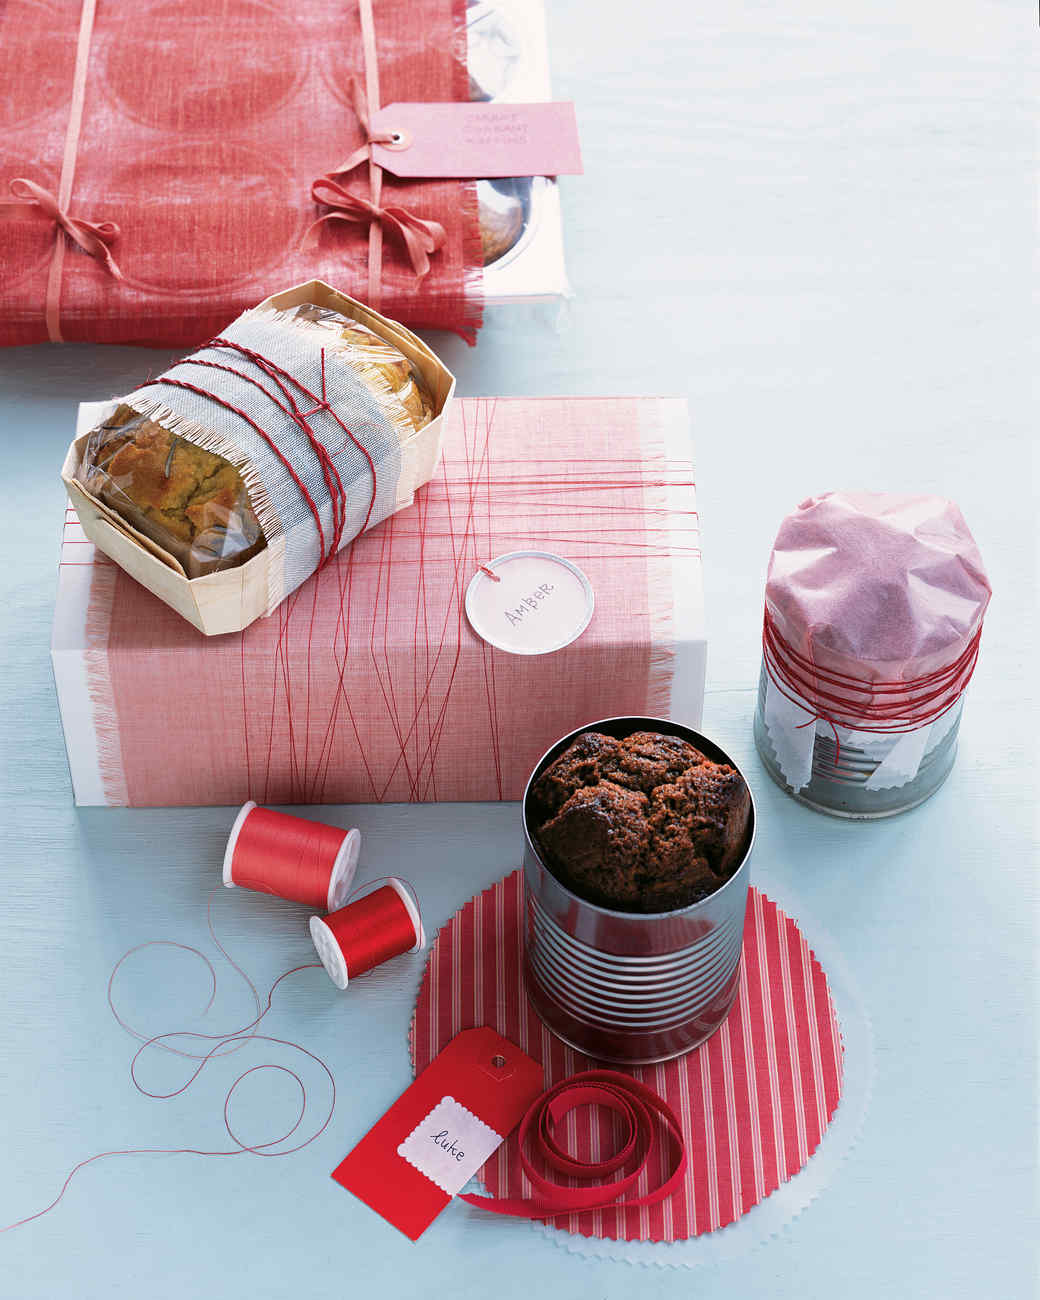 21 unique hostess gift ideas from our editors | martha stewart